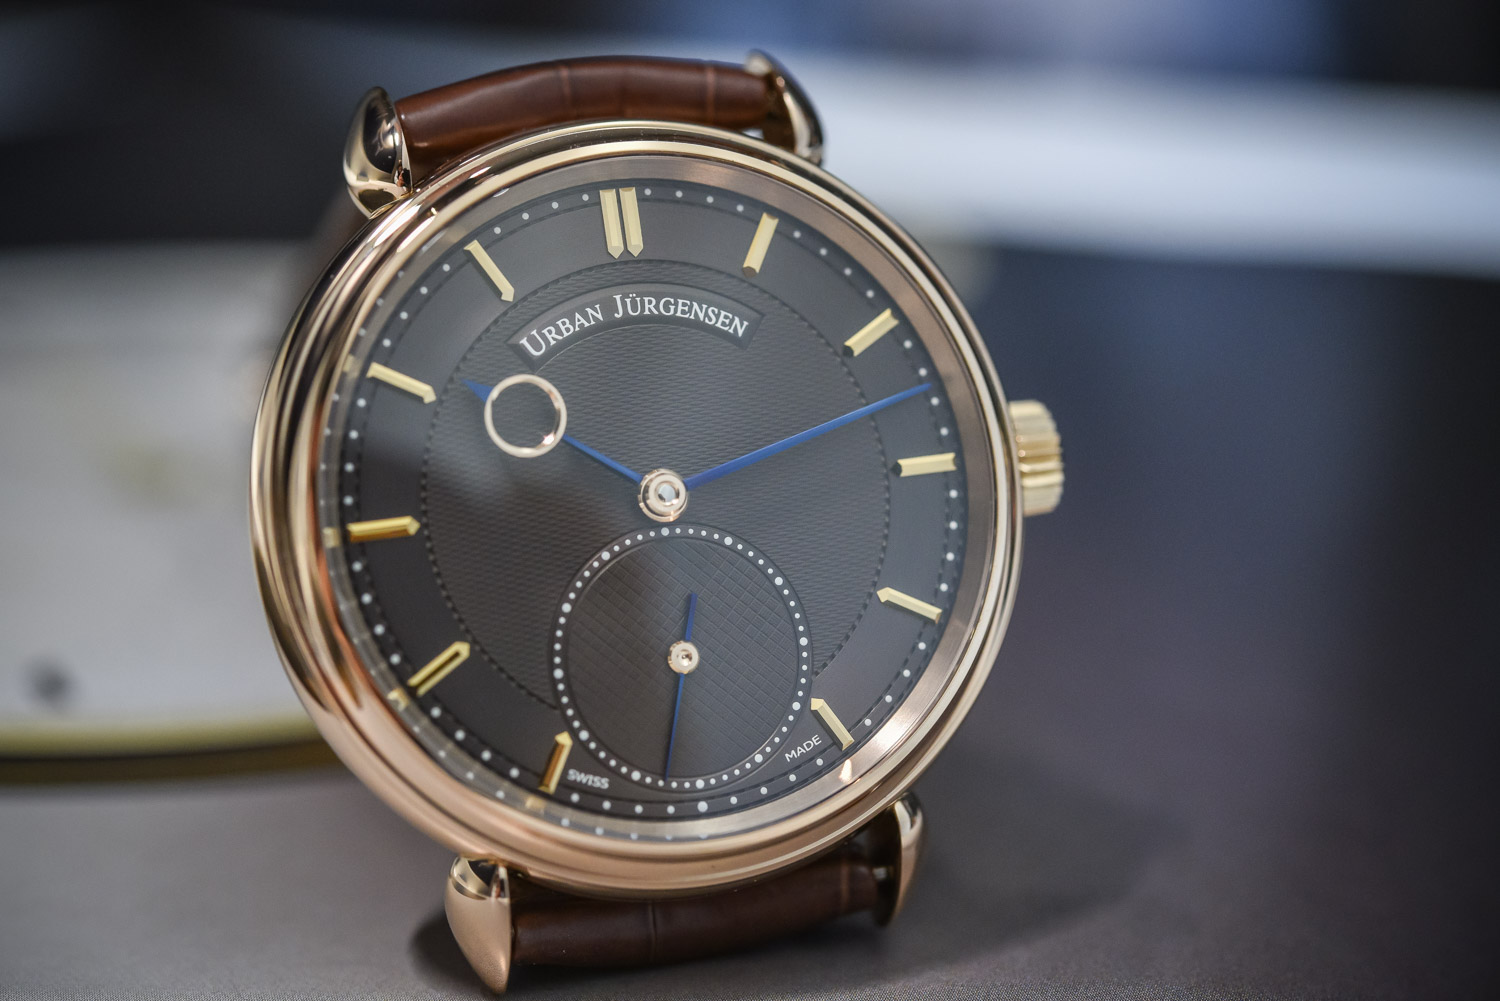 urban jurgensen hand-manufactured hands